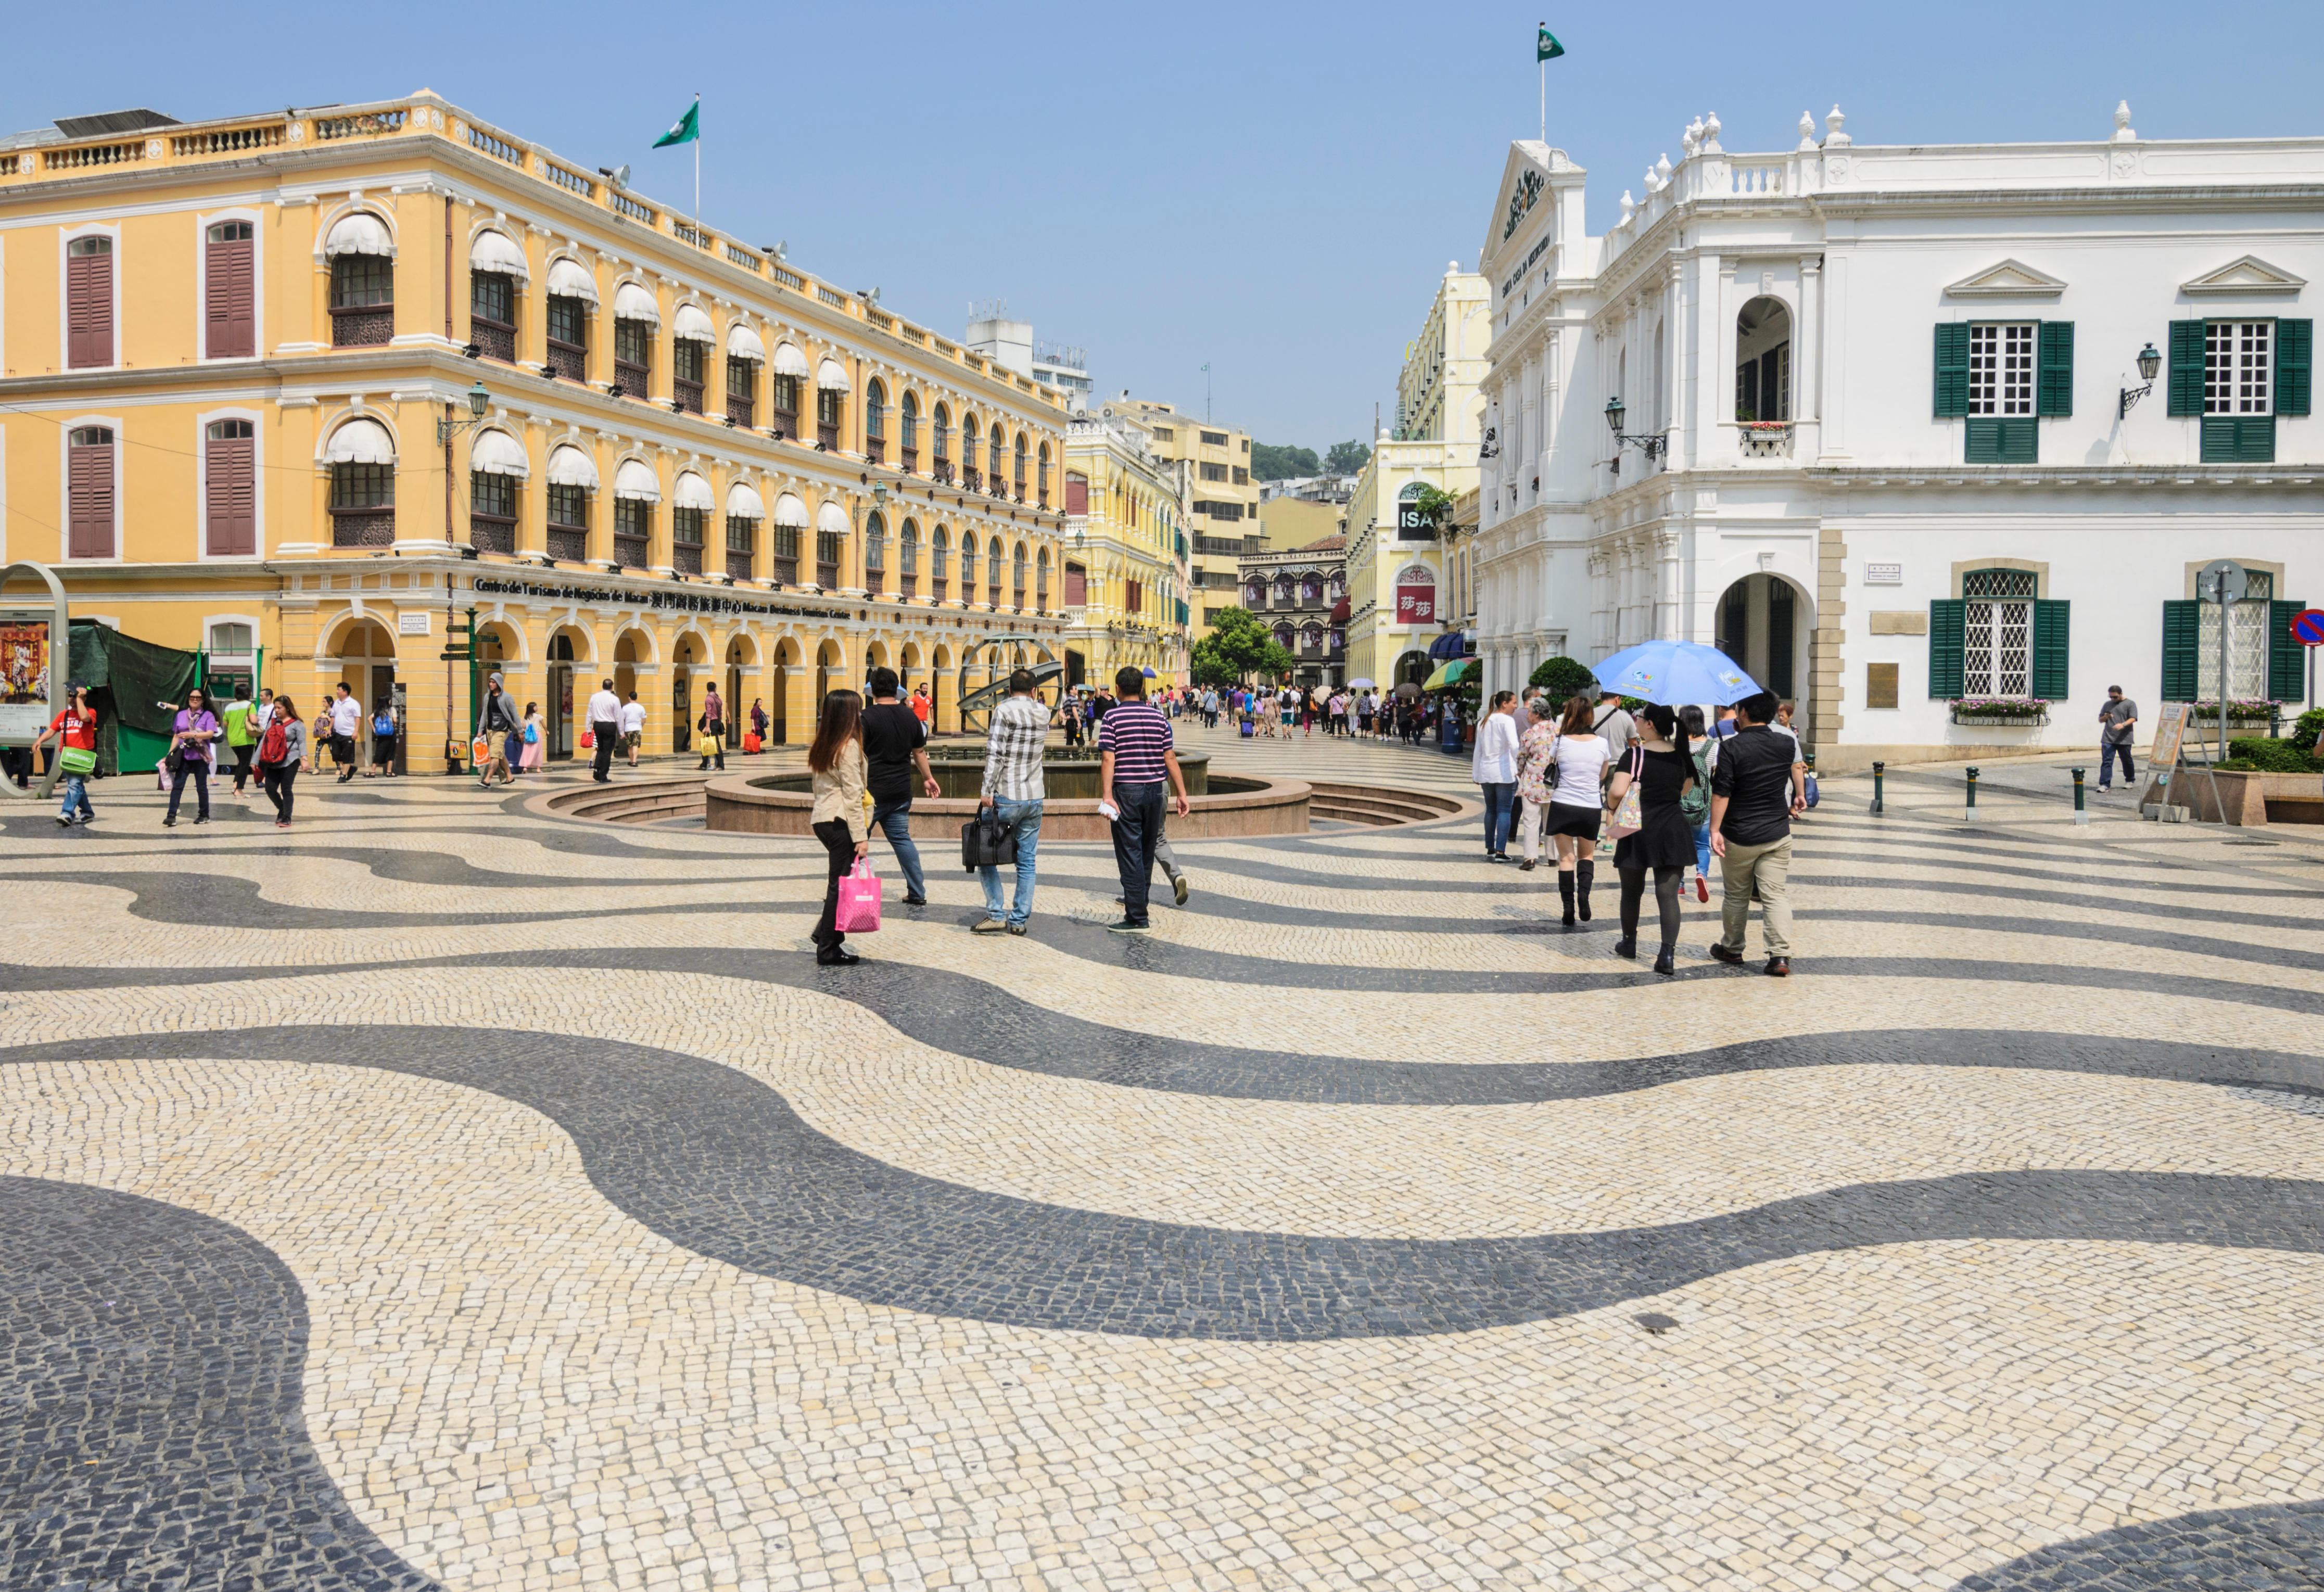 Mosaic cobbles of Senado Square, Macau, China. Image shot 10/2014. Exact date unknown.